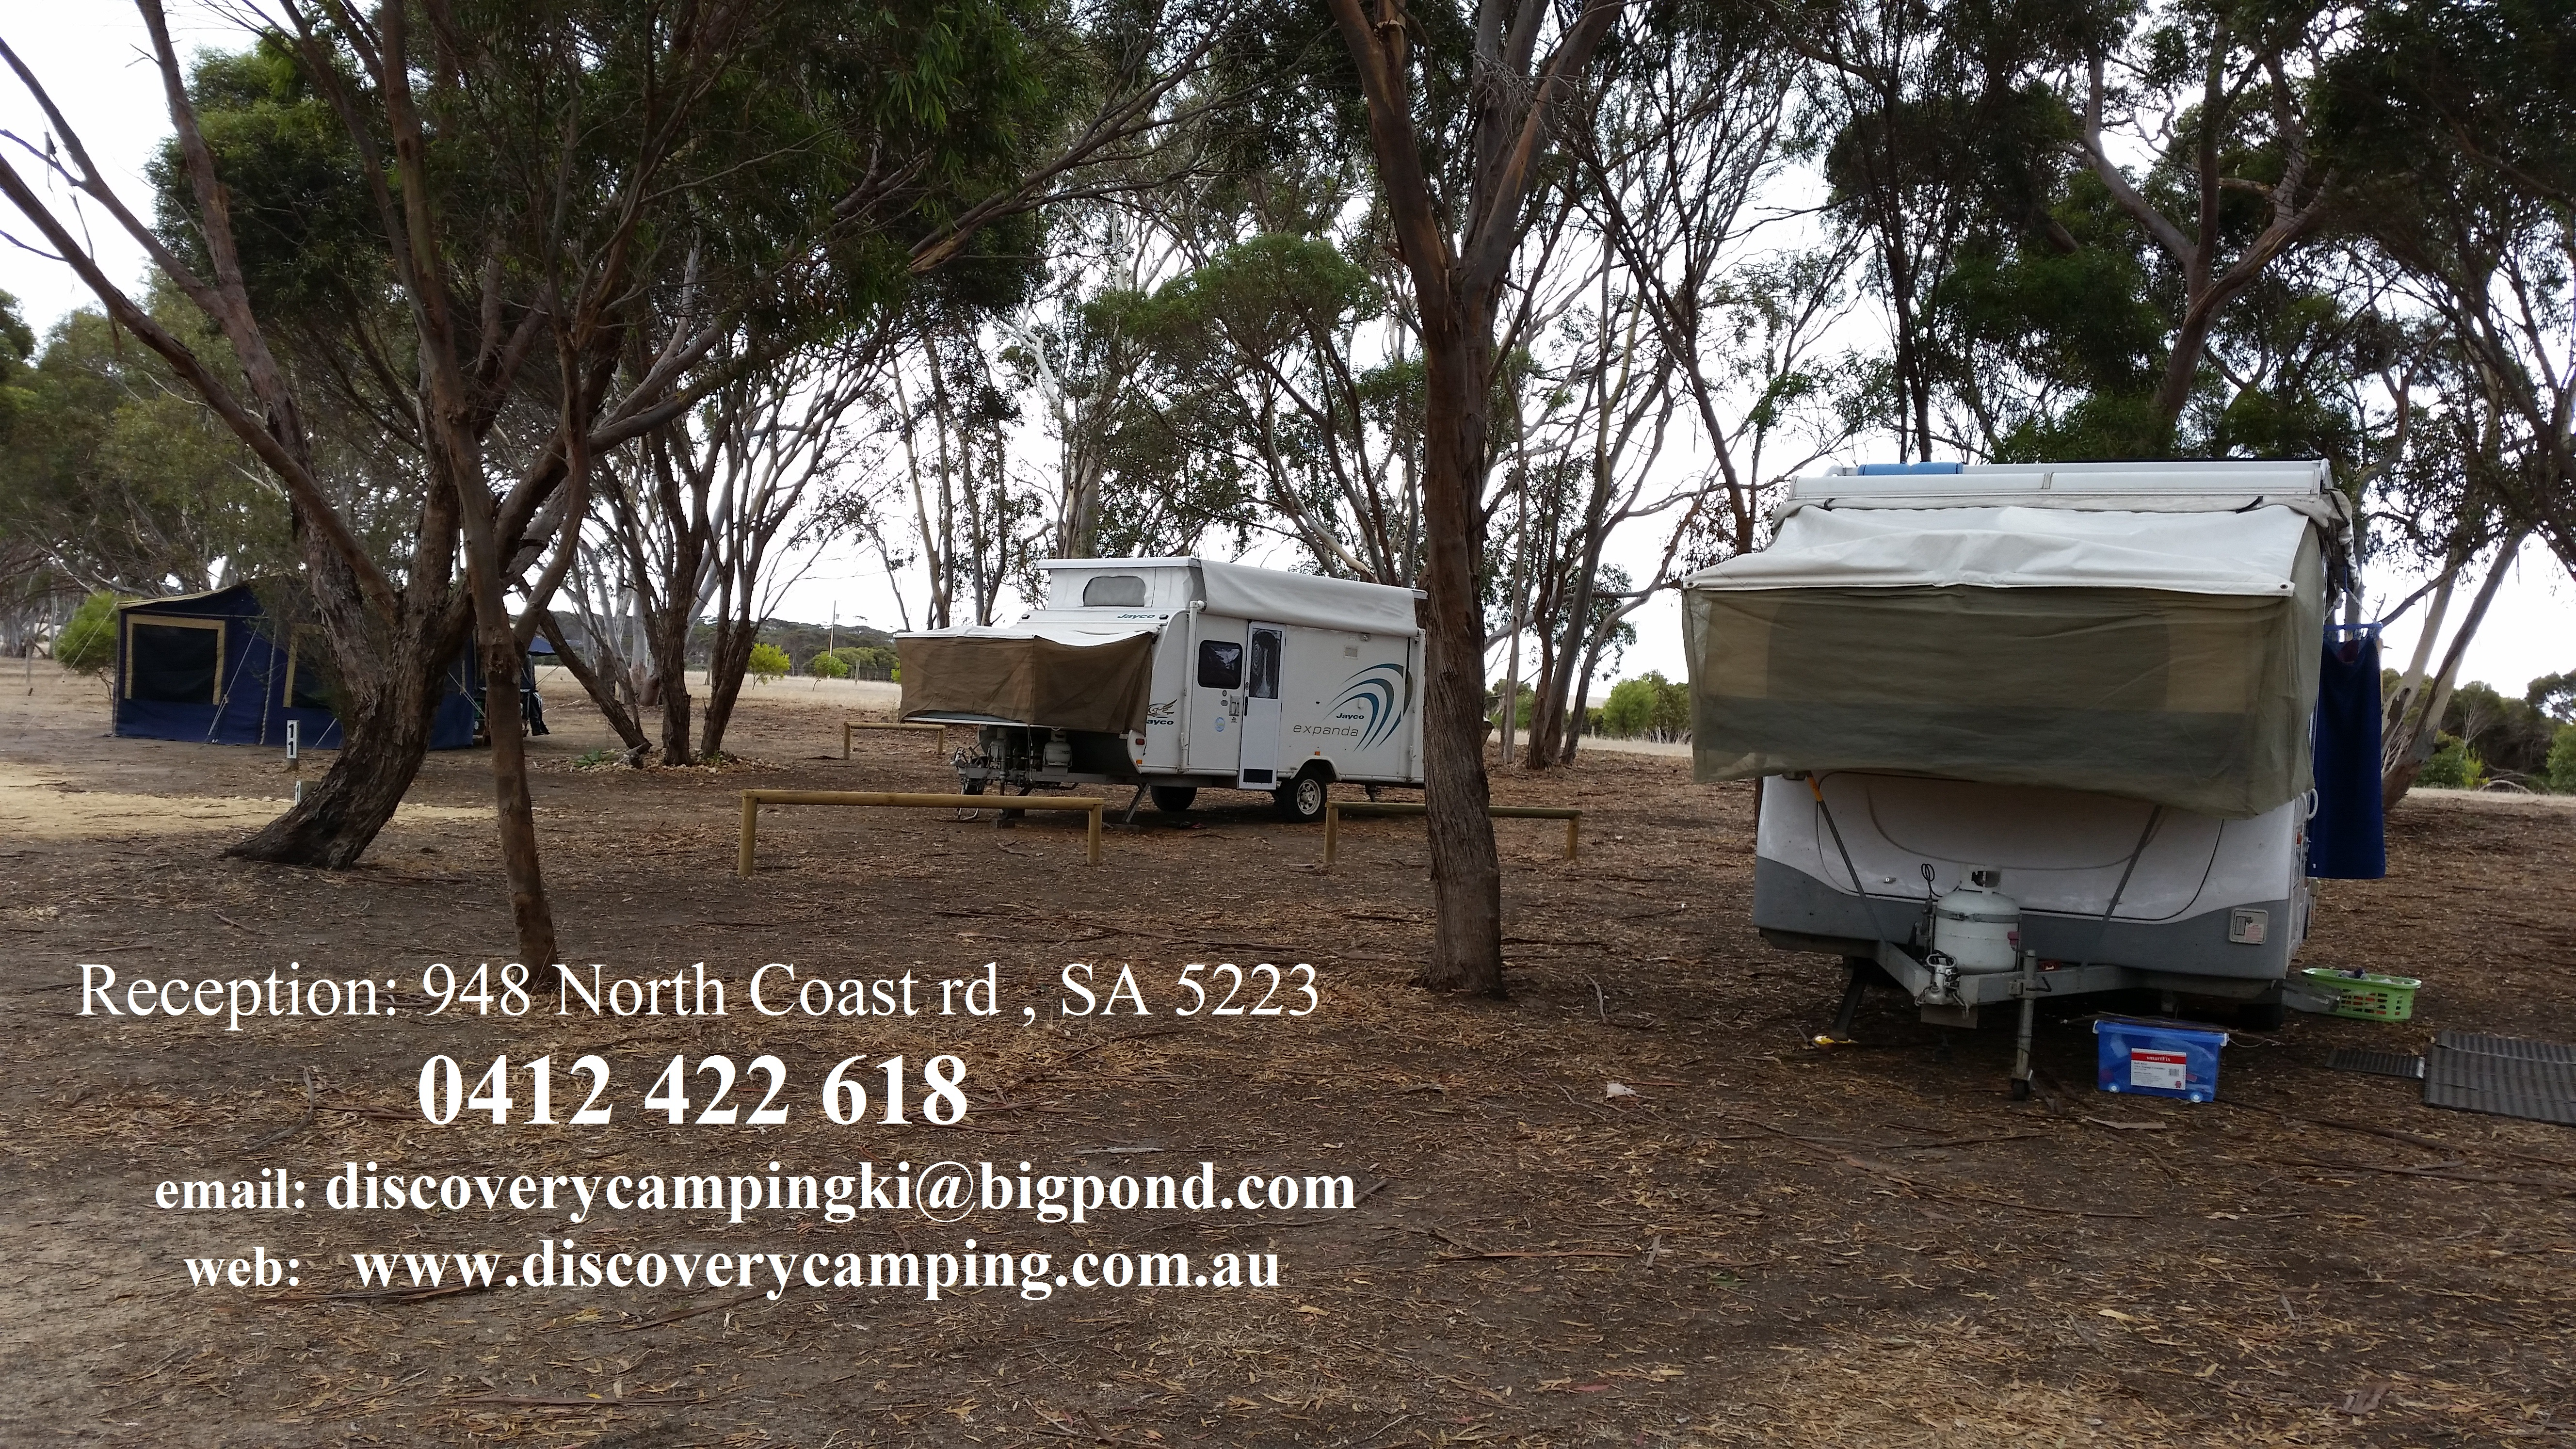 Discovery Lagoon  Caravan  Camping Grounds - Accommodation Adelaide